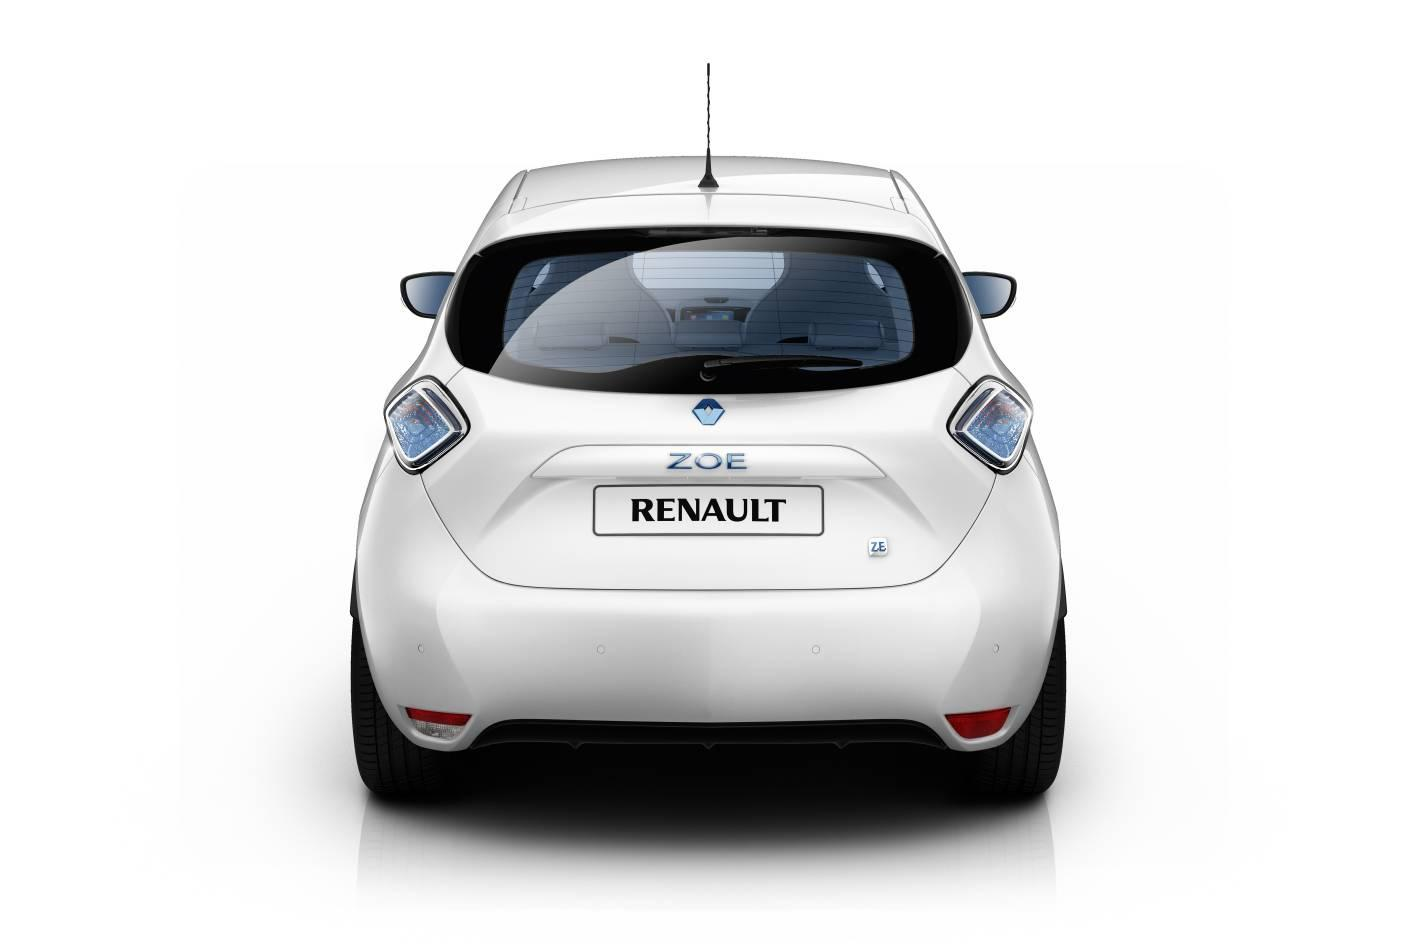 Renault's new ZOE electric supermini premieres at the 2012 Geneva Motor Show